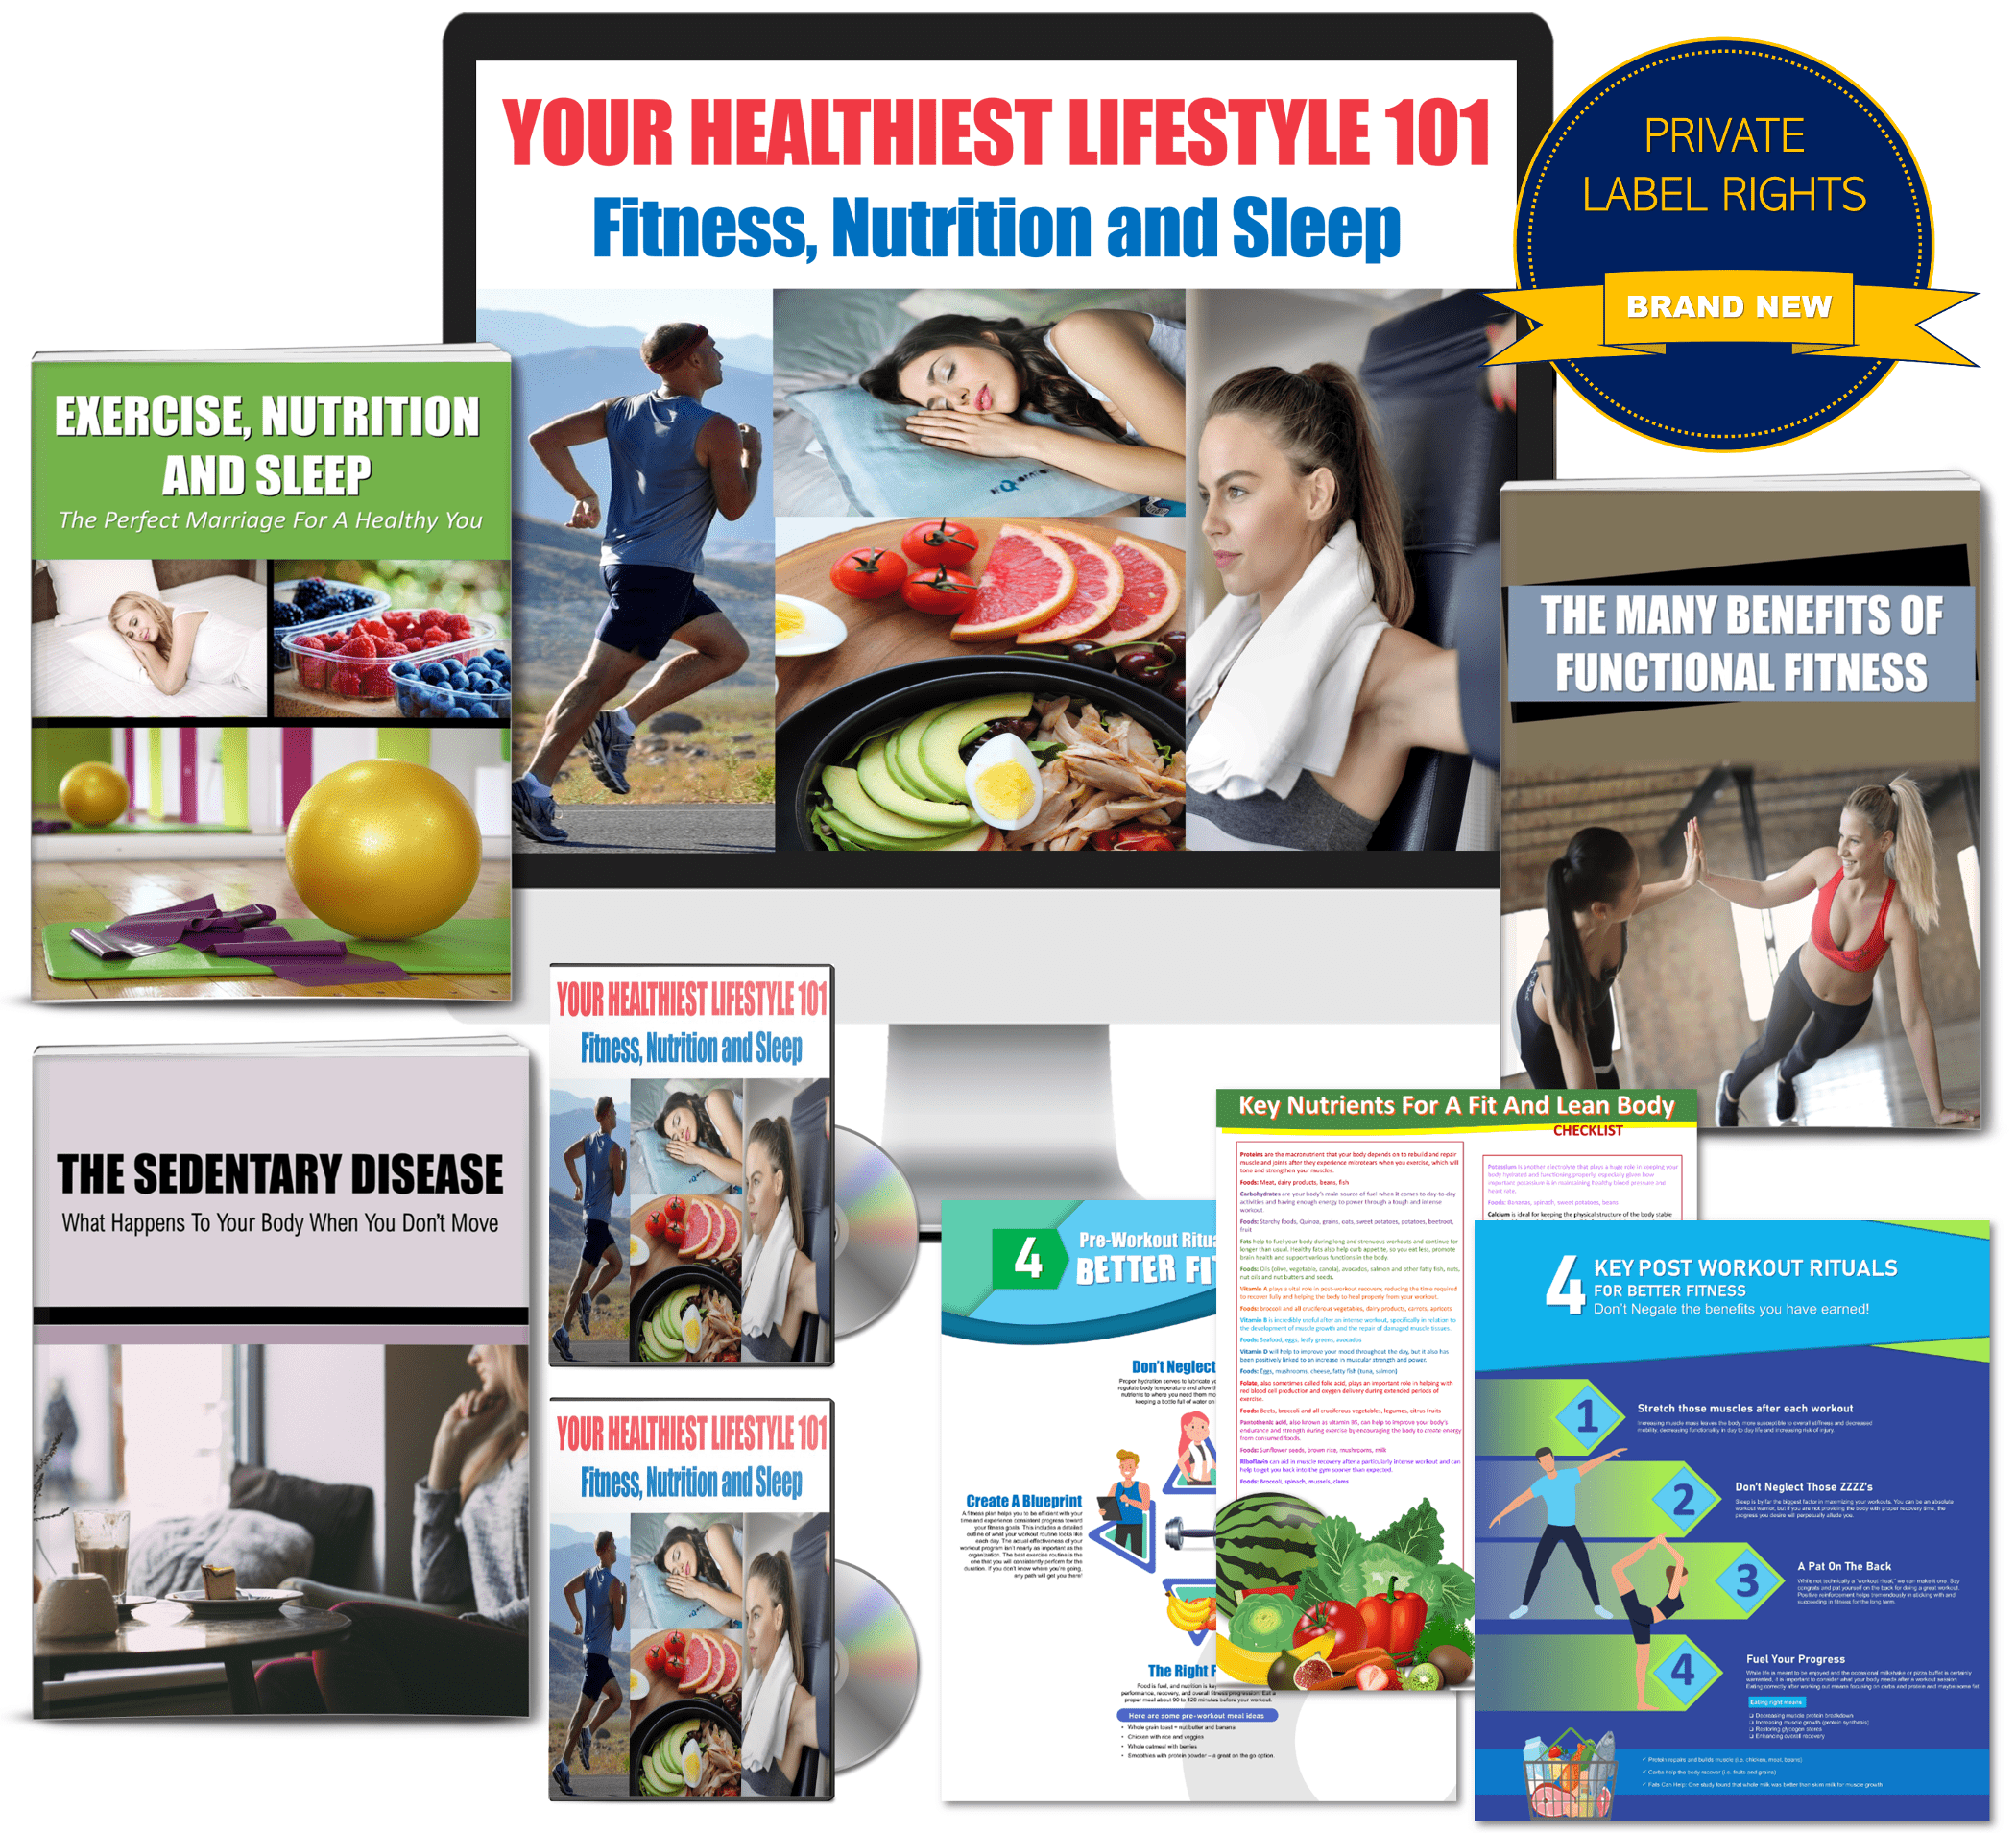 Your Healthiest Lifestyle 101: Fitness, Nutrition And Sleep Content With PLR Rights